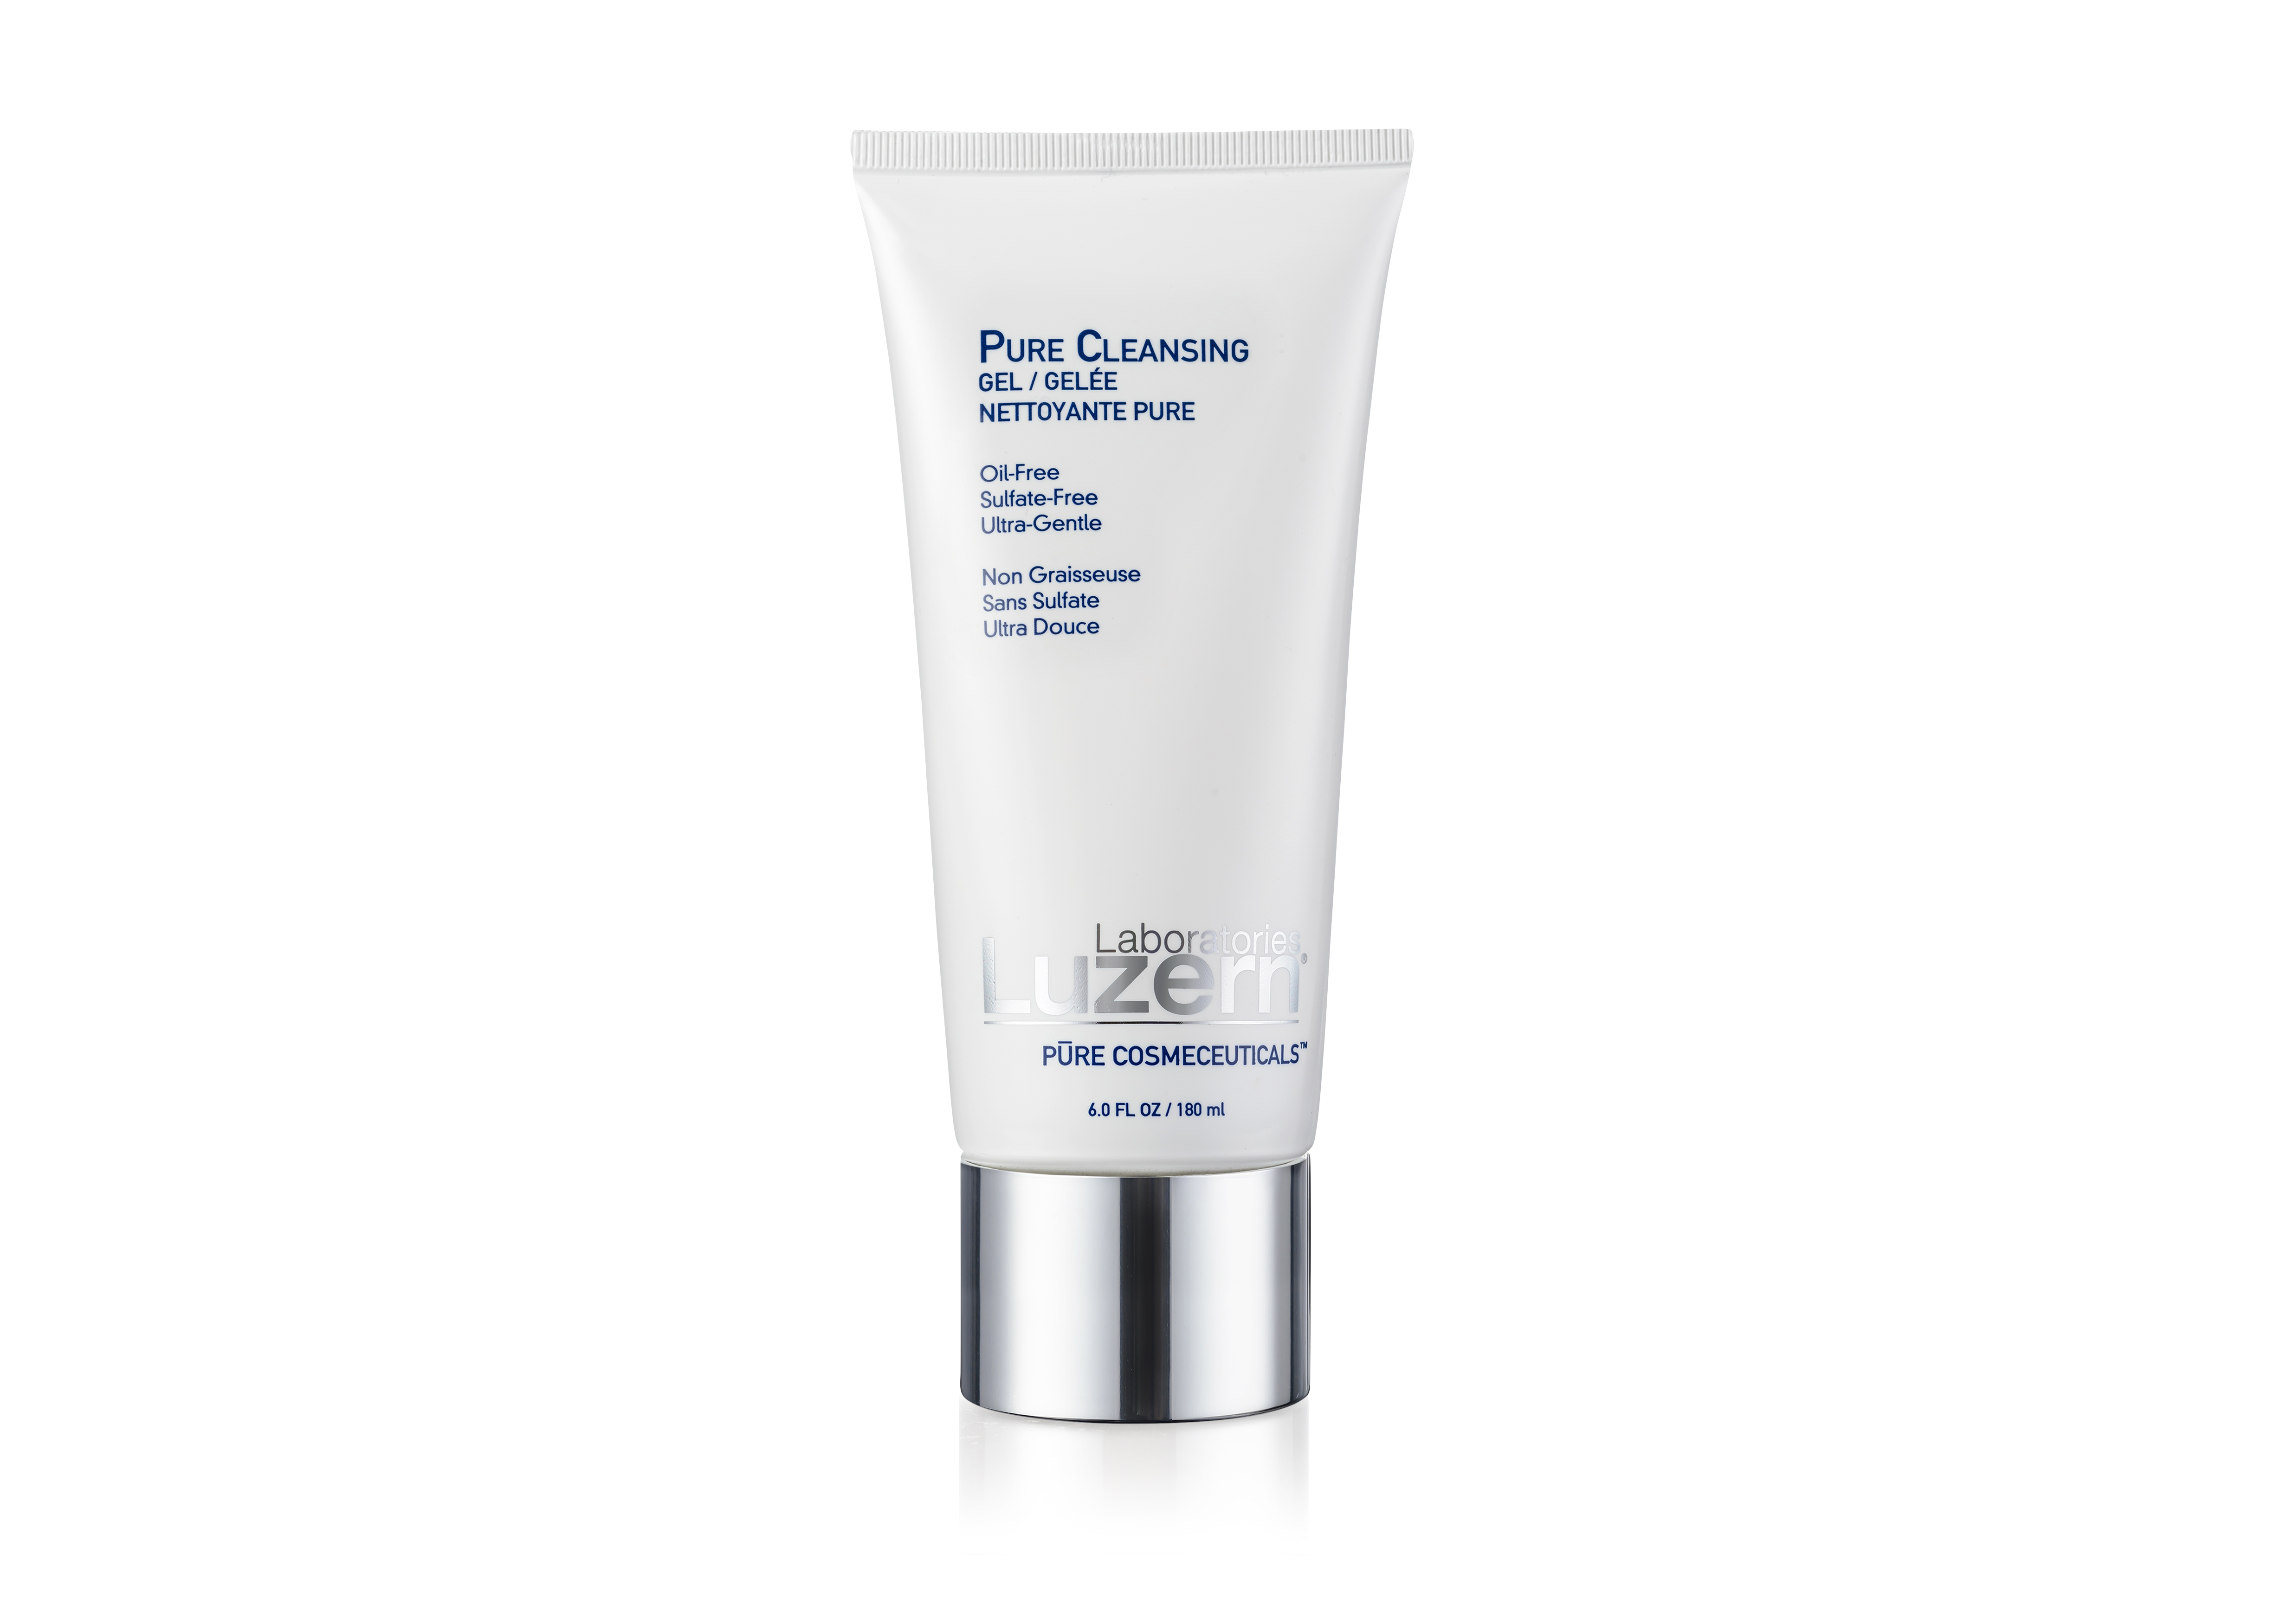 Pure Cleansing Gelee From Luzern